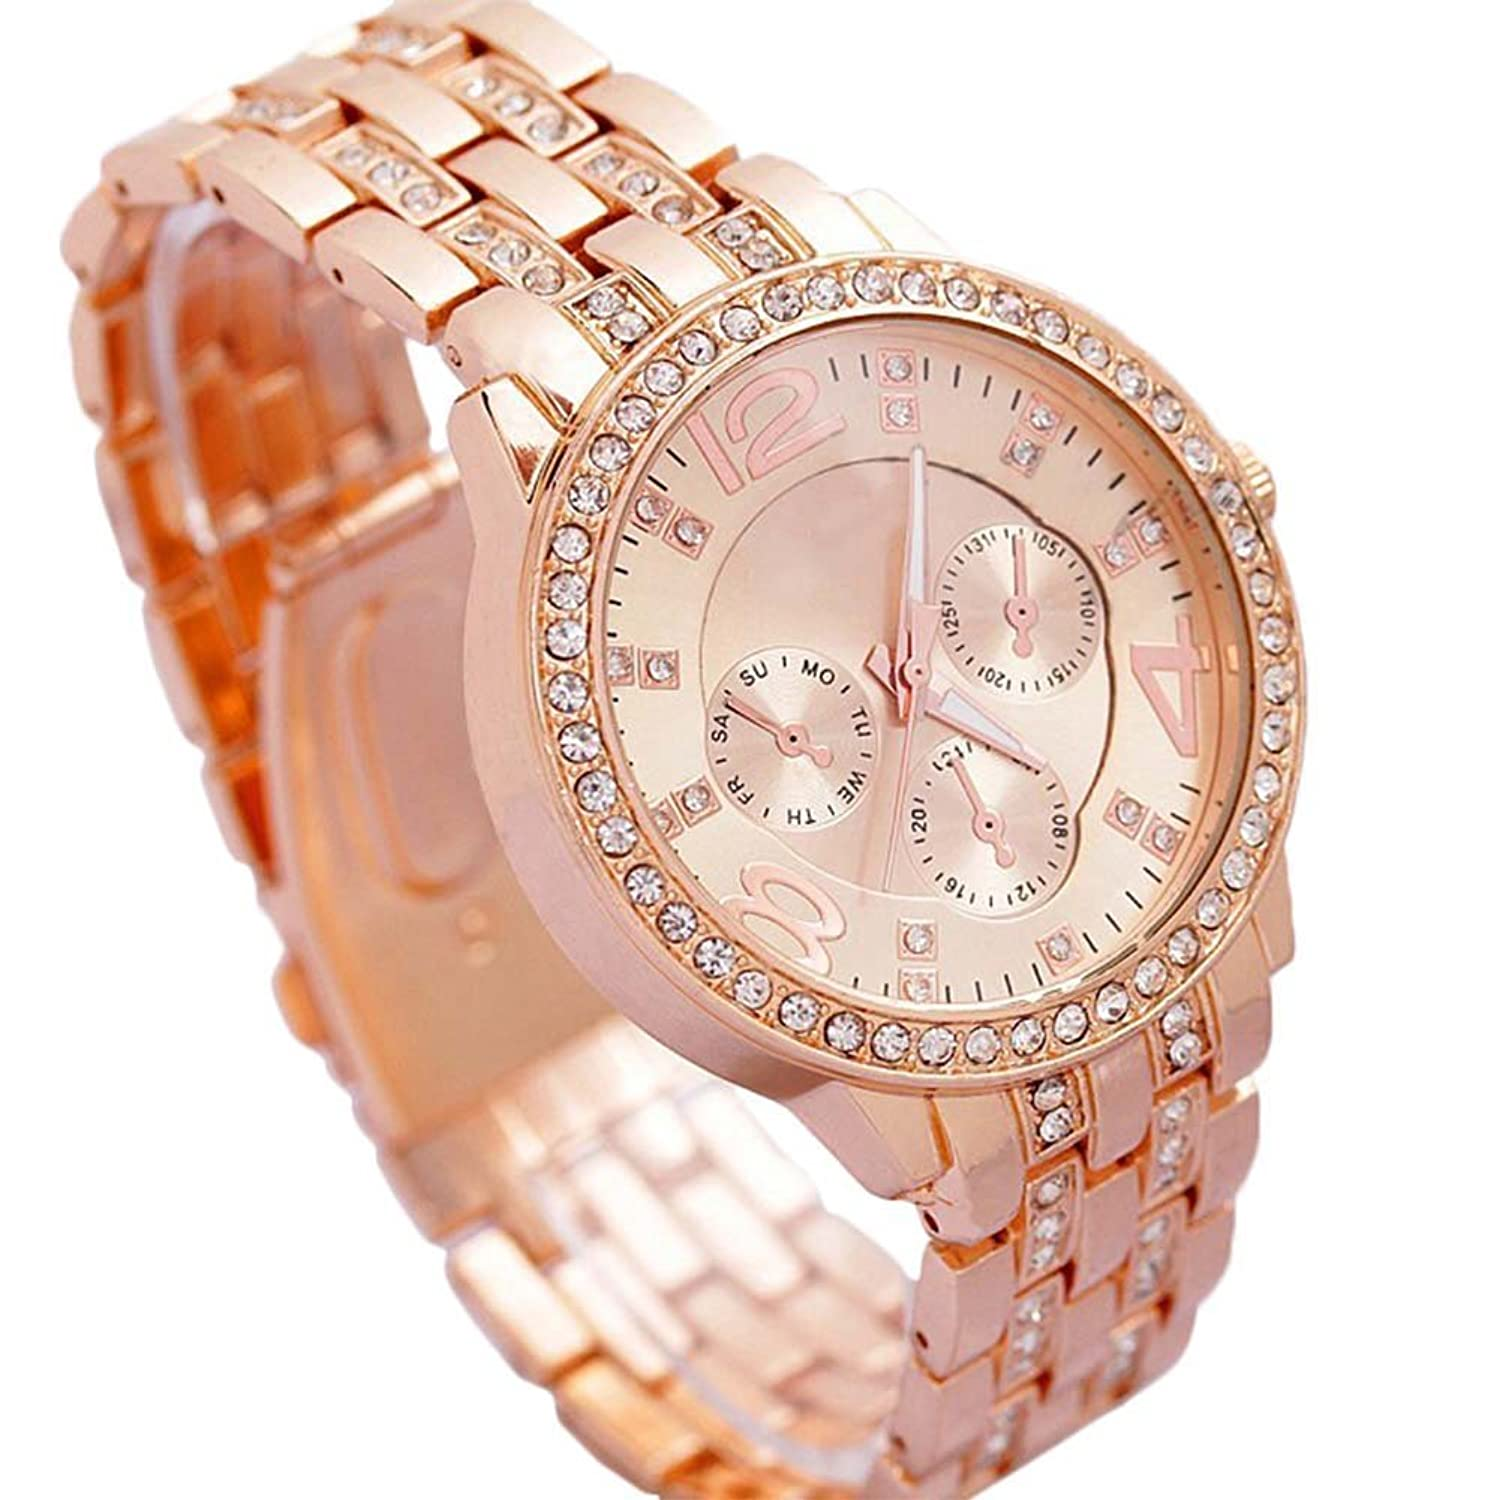 blushed bought watch estelle watches pin womens women this pink komono gold pinterest rose for